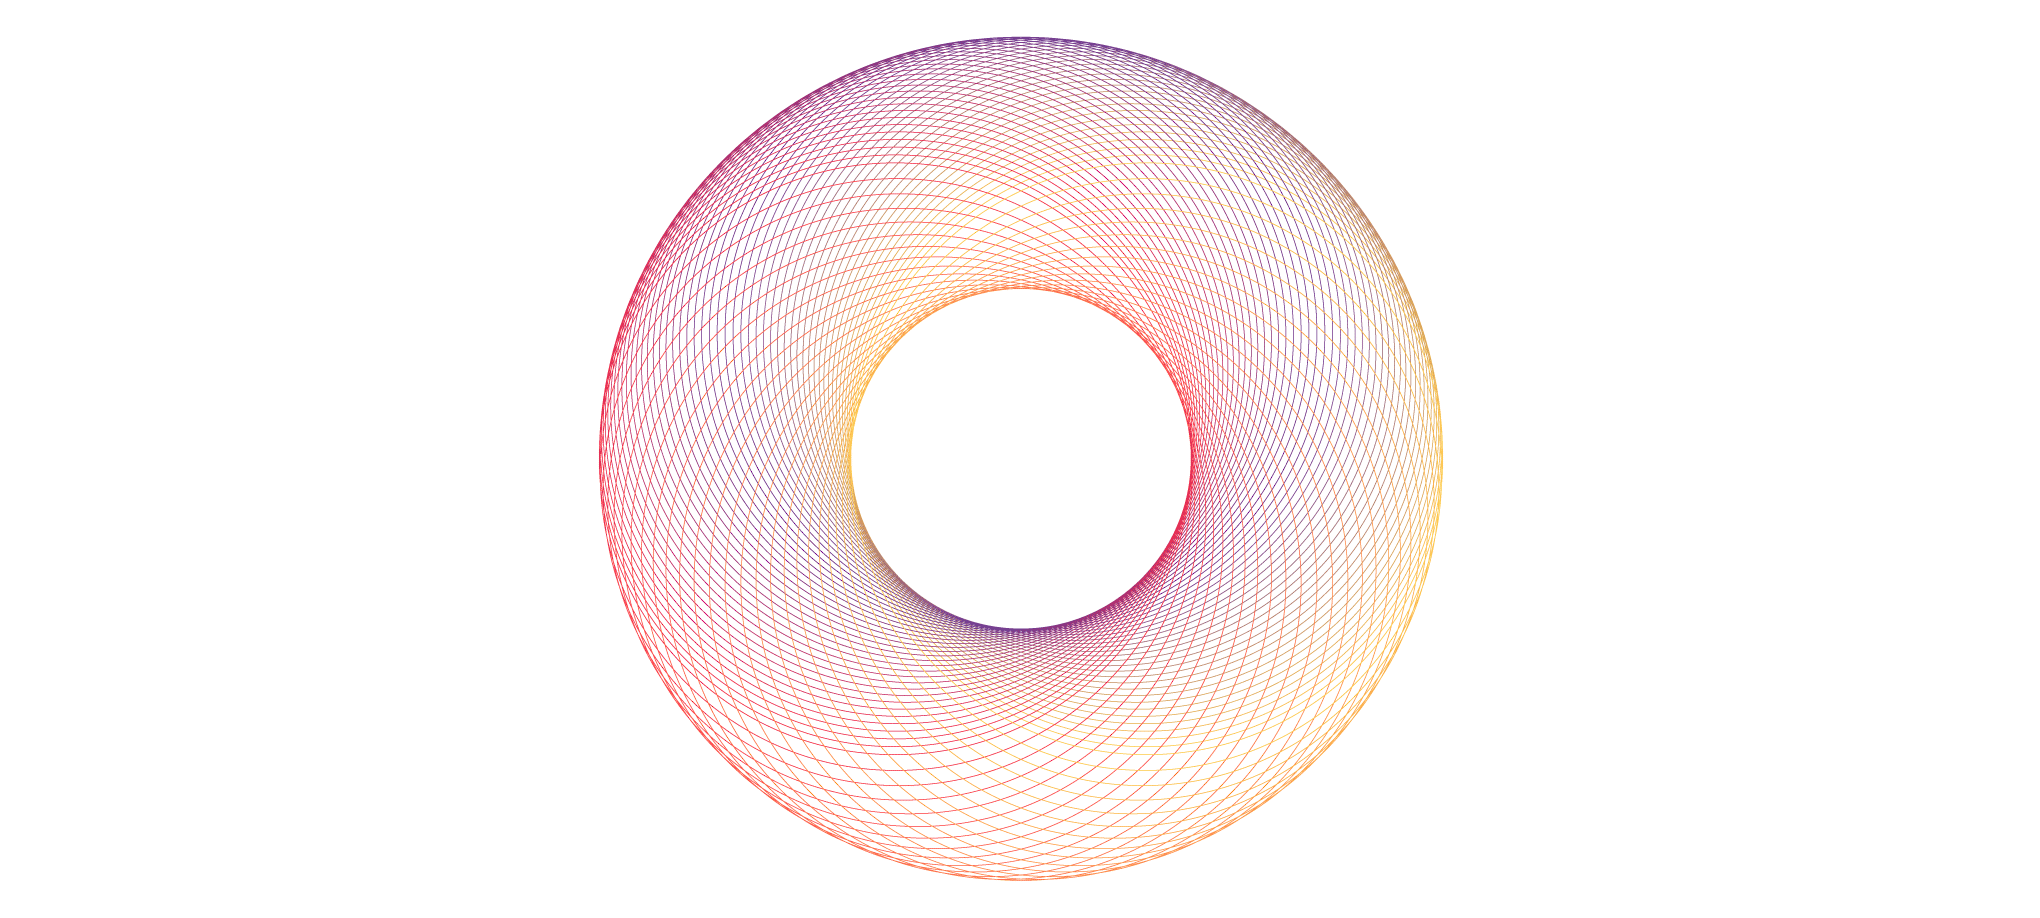 A spirograph circle ring using the Blend Tool